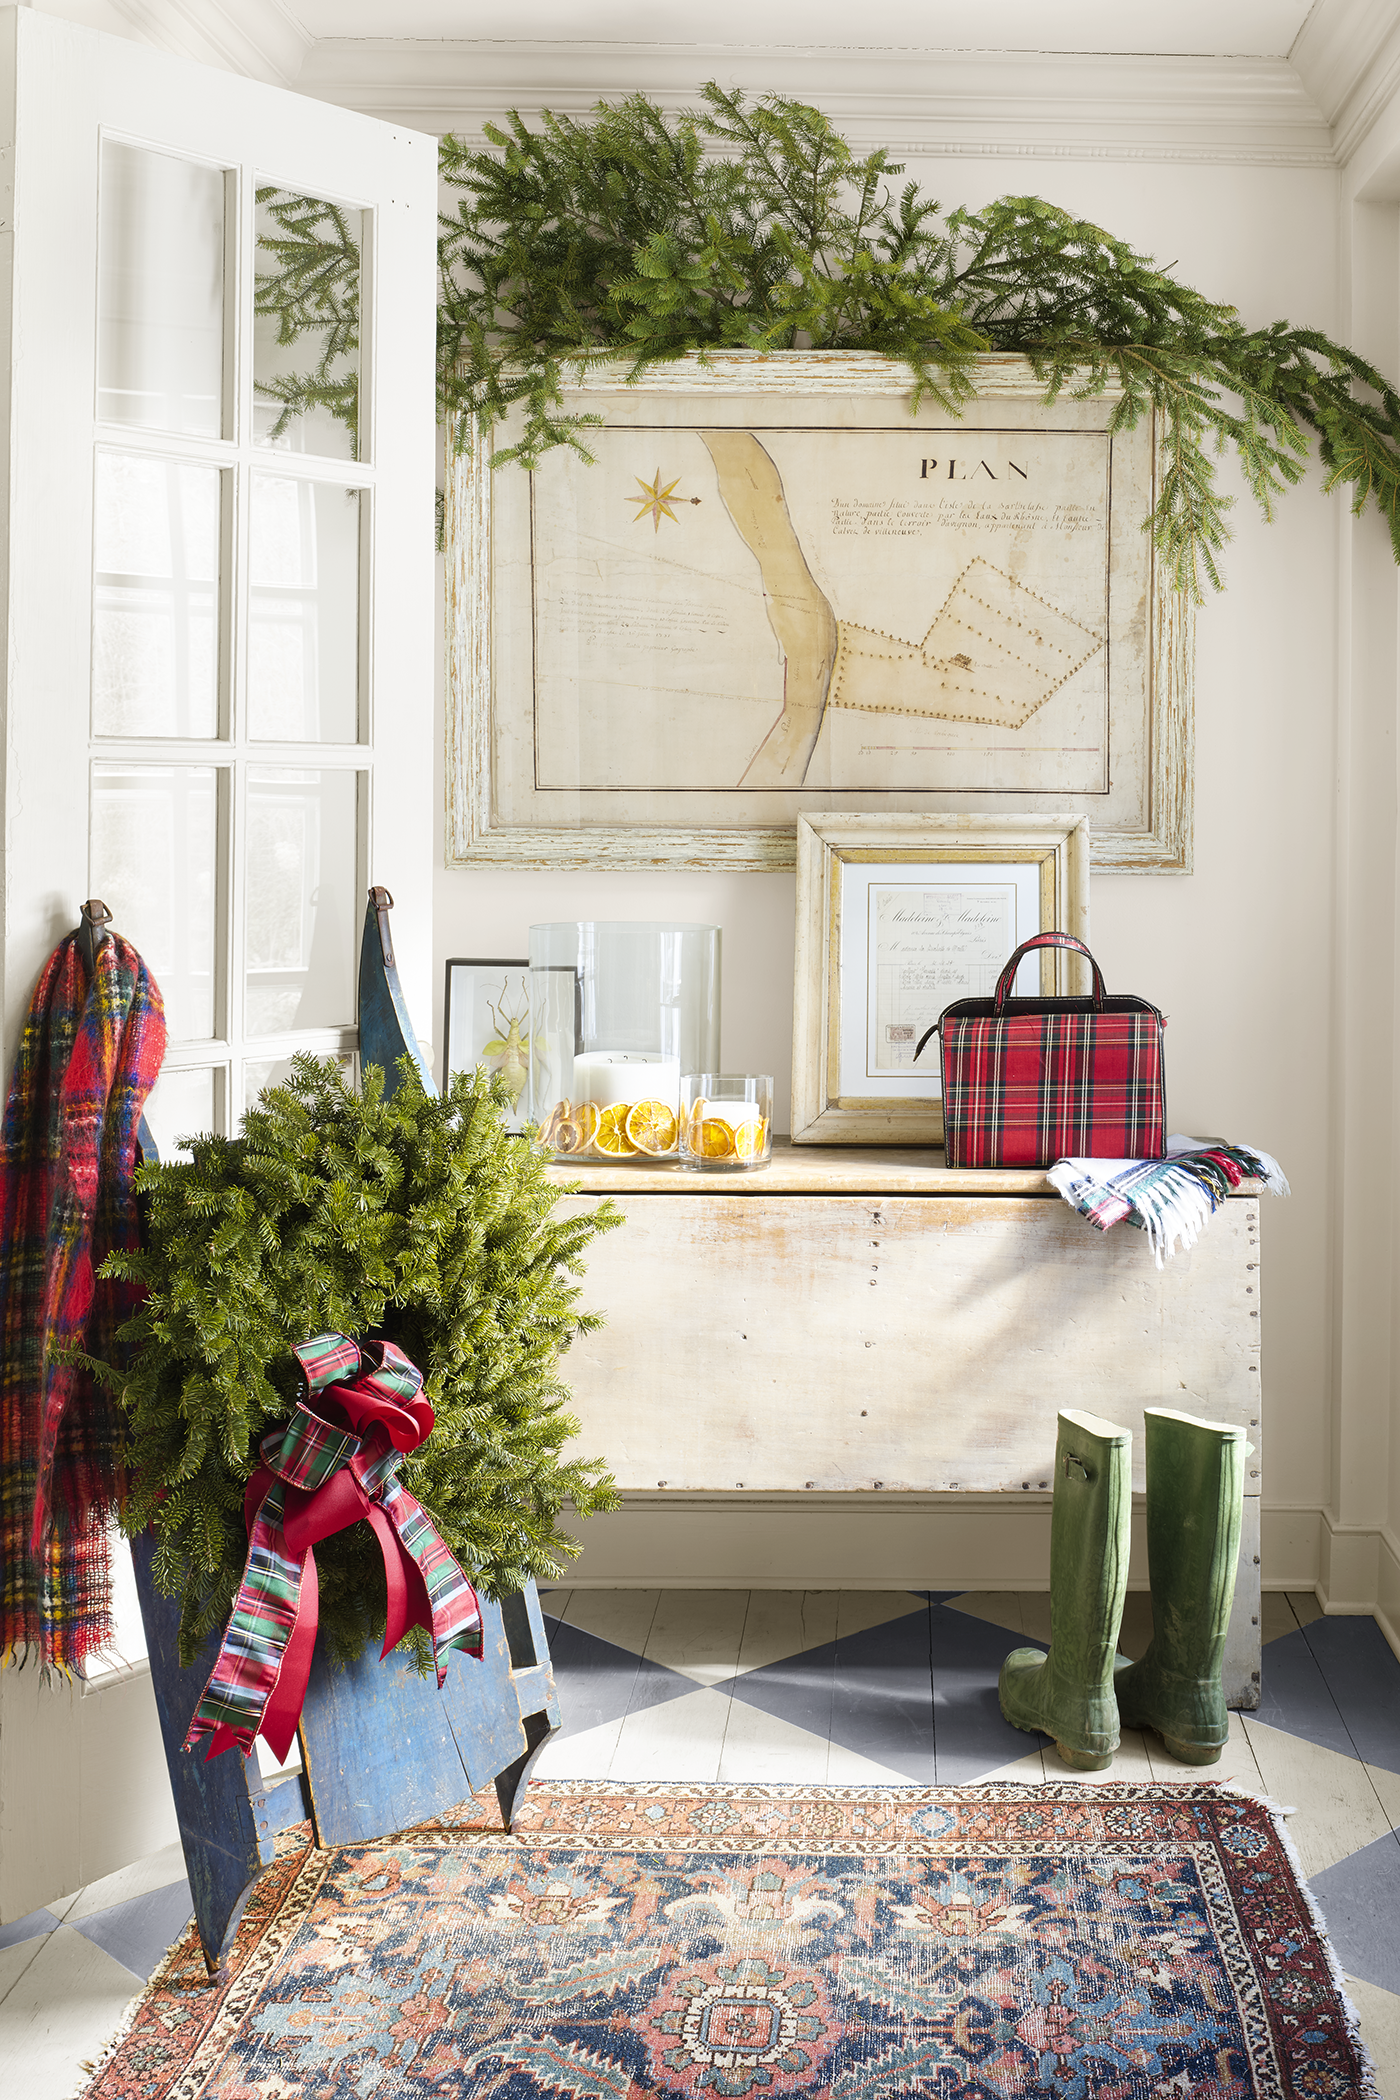 25 Winter Decorating Ideas - How to Decorate Your Home for Winter